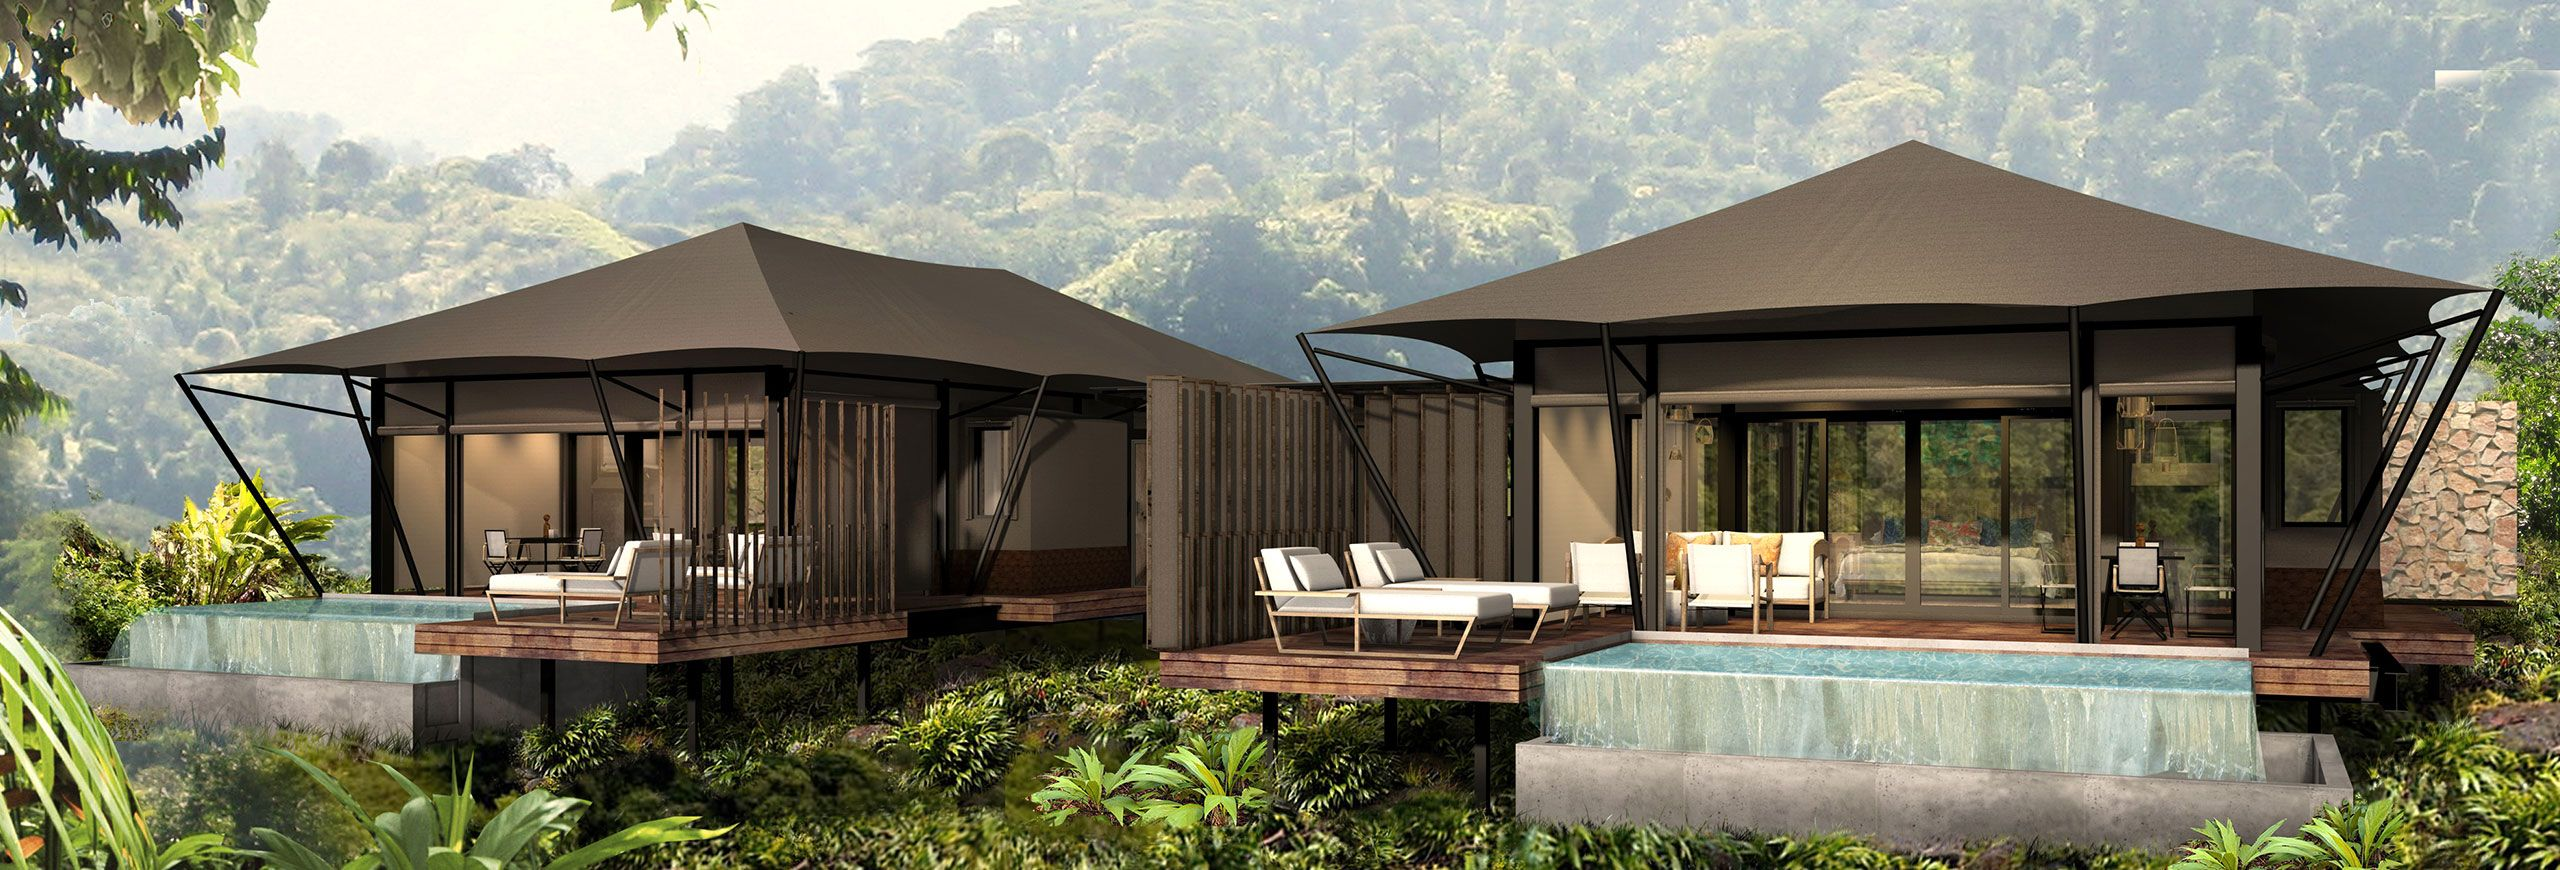 Nayara Tented Camp Arenal Volcano National Park Costa Rica Luxury Frontiers Luxury Hotel Luxury Tents Hotel